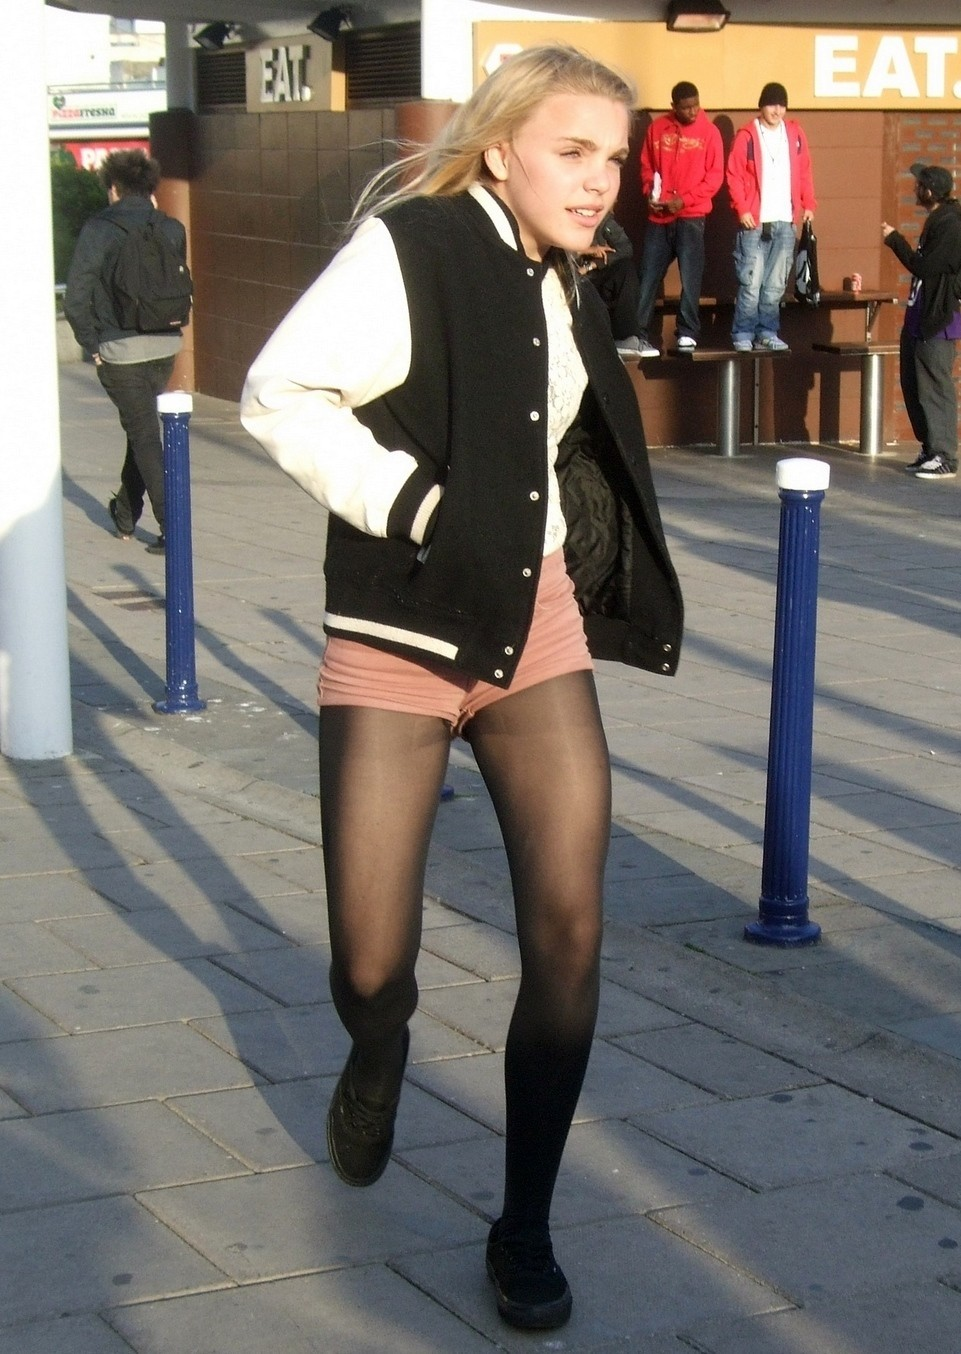 Candid Teens In Pantyhose